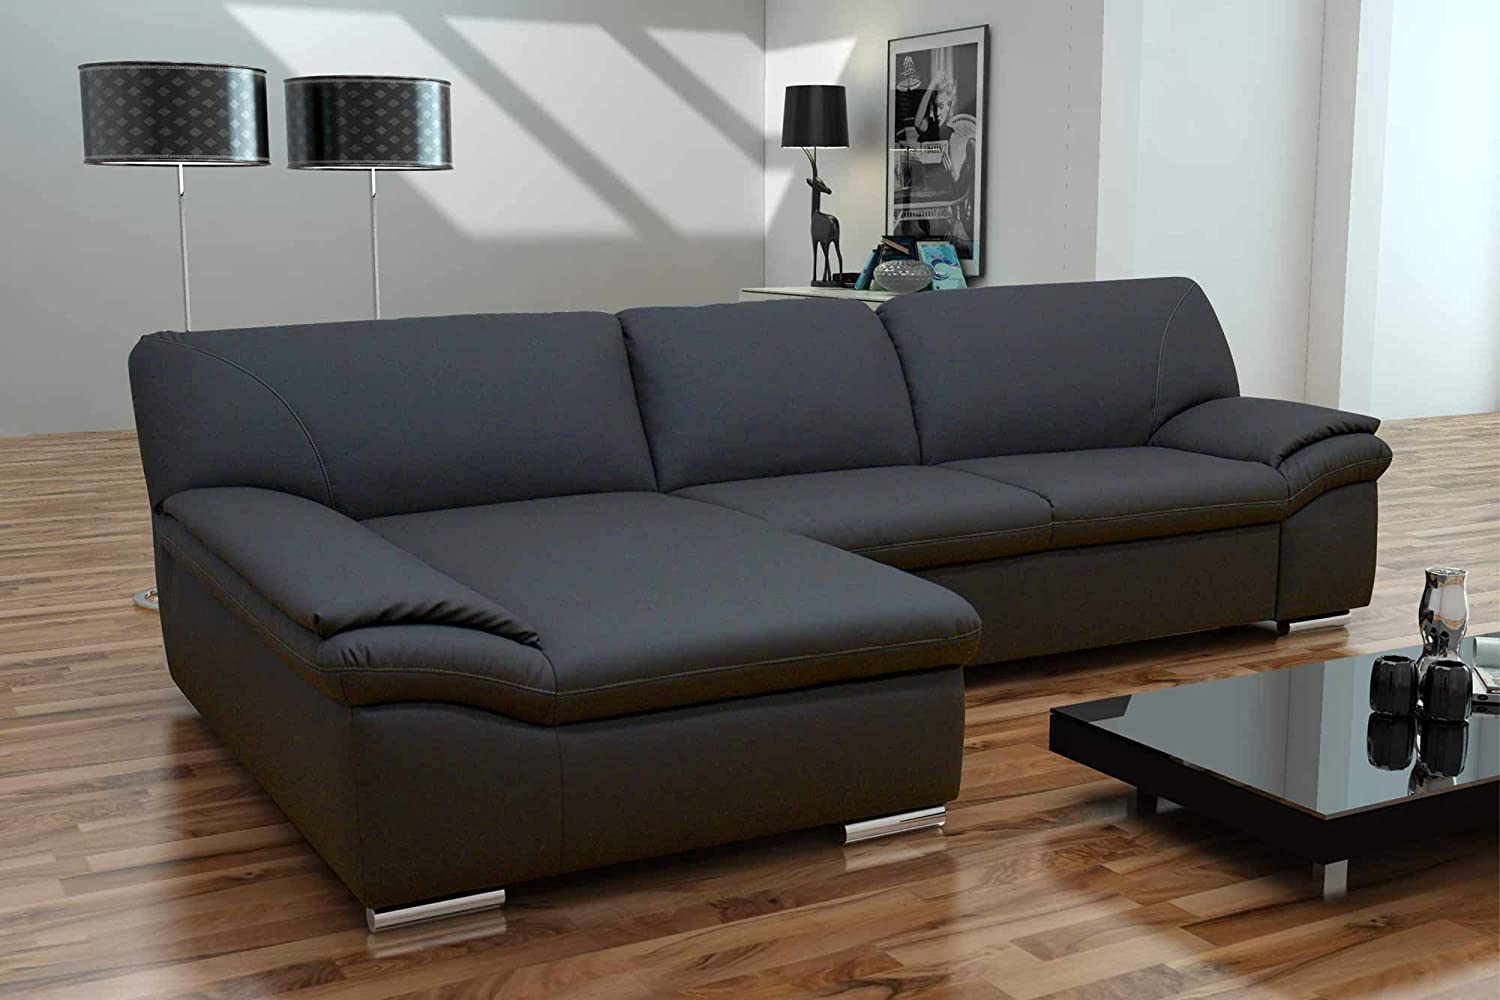 sofa ecksofa sofaecke ottomane schwarz polsterecke eckcouch couchgarnitur. Black Bedroom Furniture Sets. Home Design Ideas